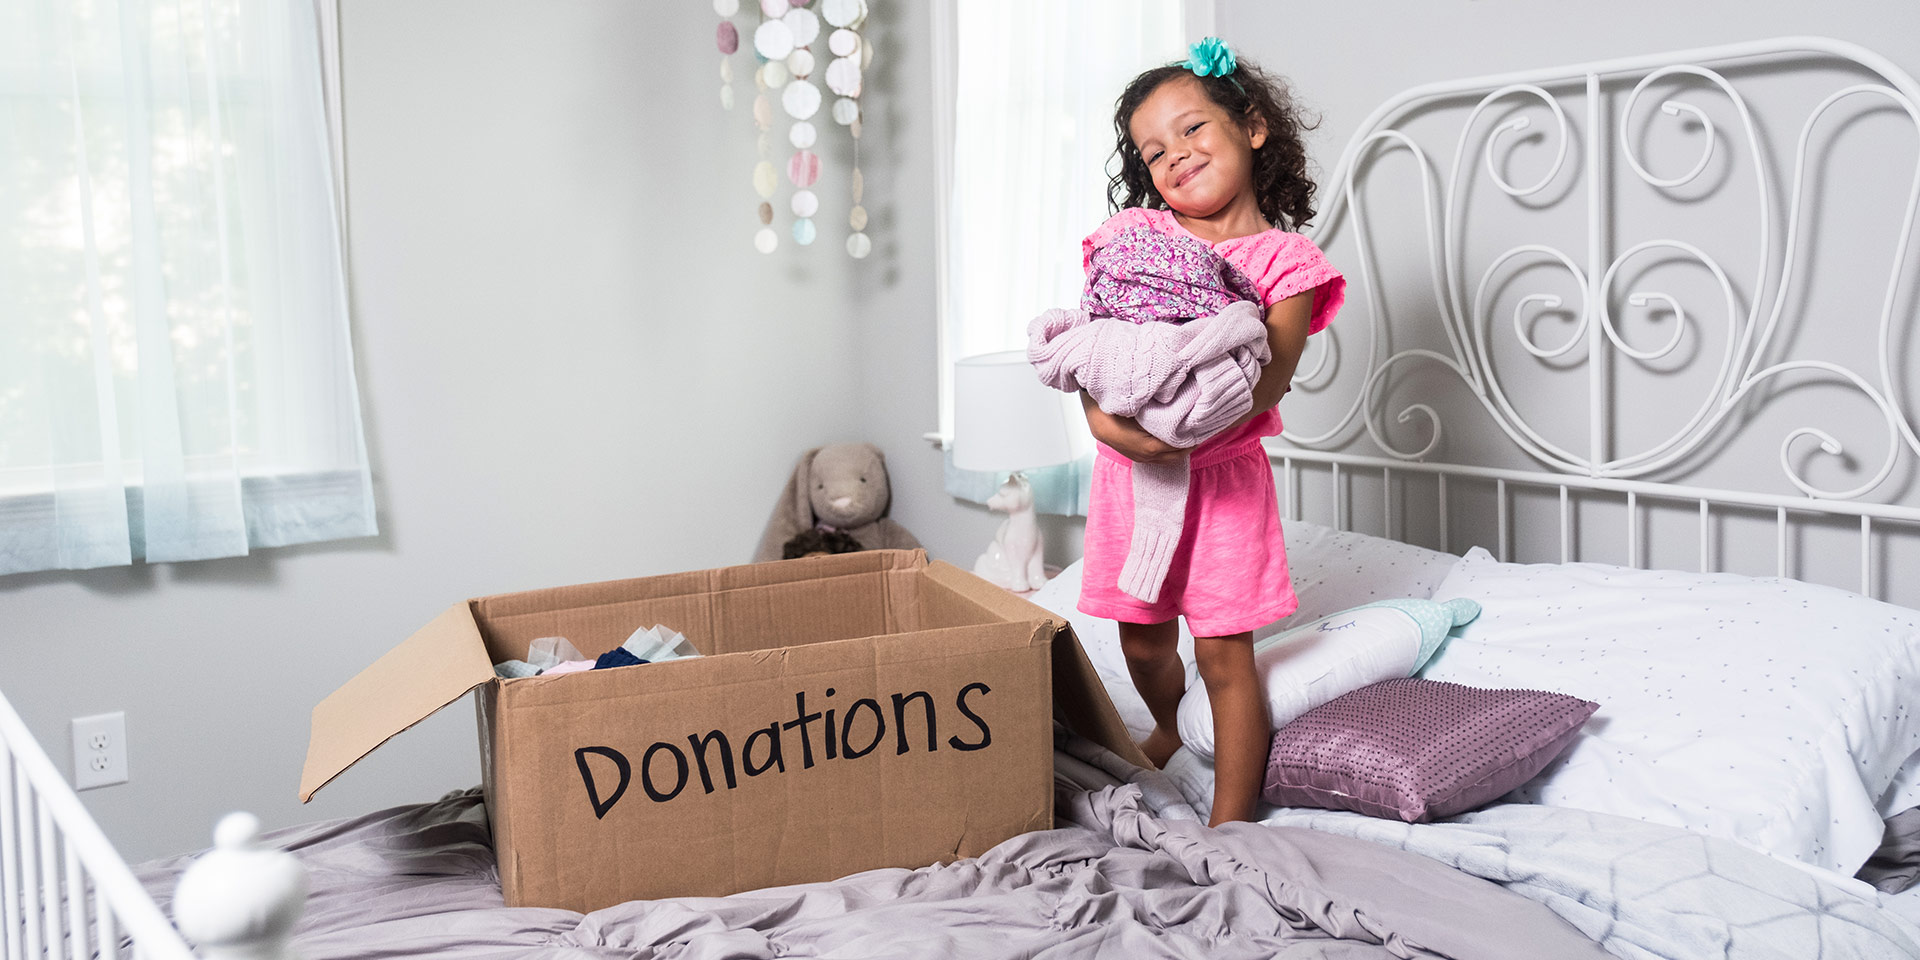 A young girl is excited to bring her donations to Goodwill.